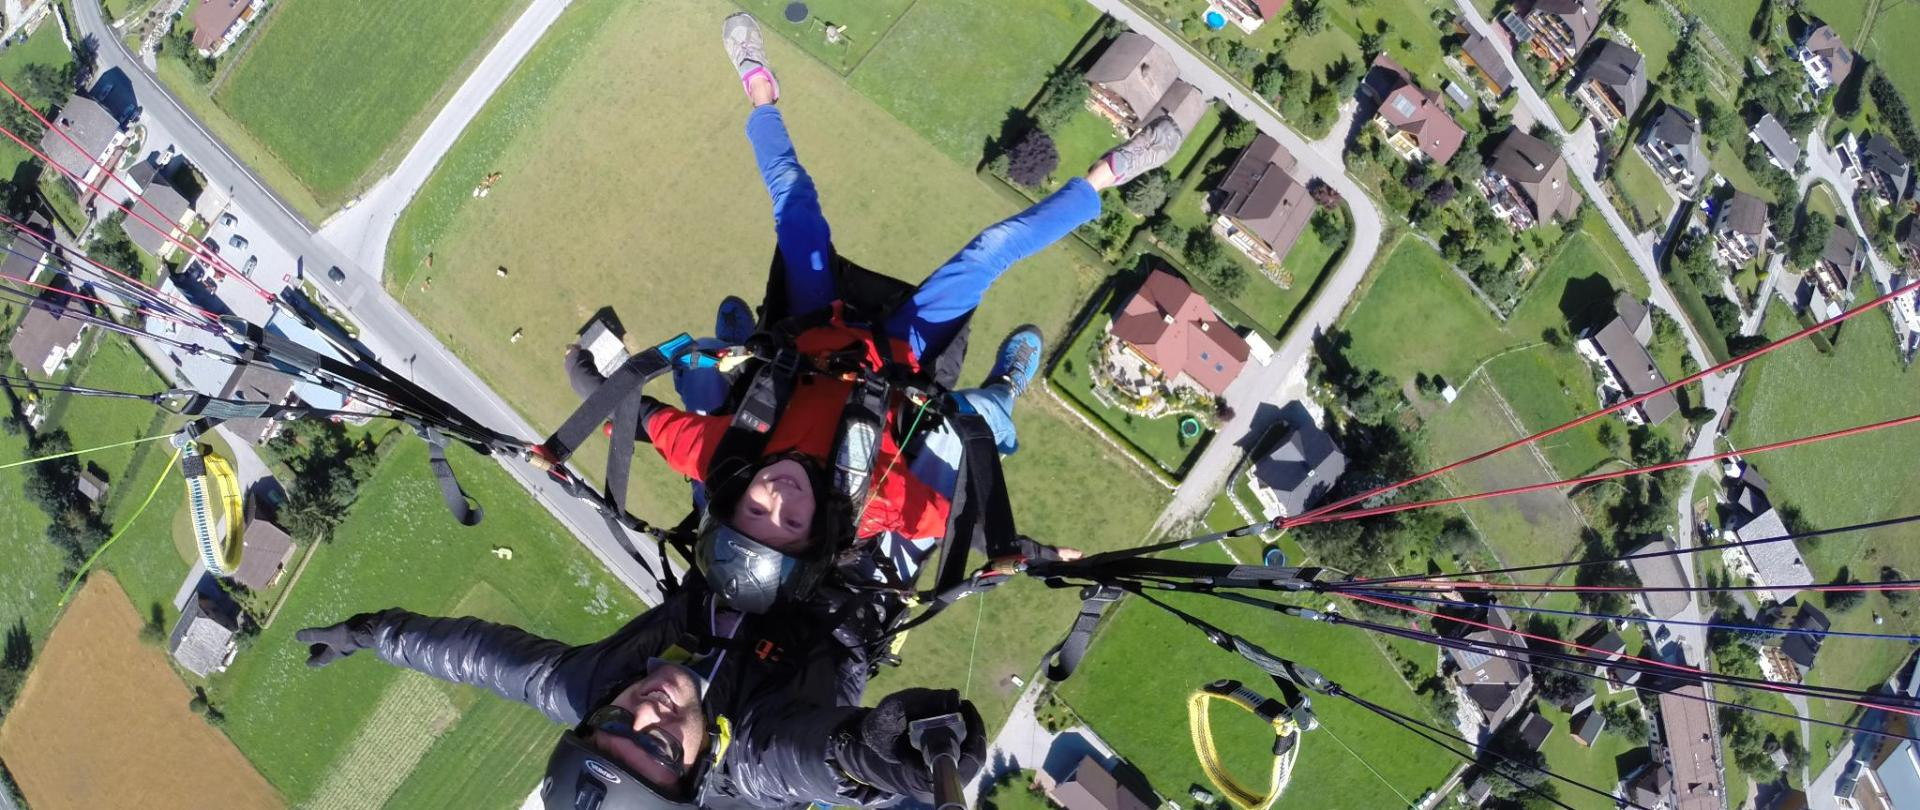 duo paragliding